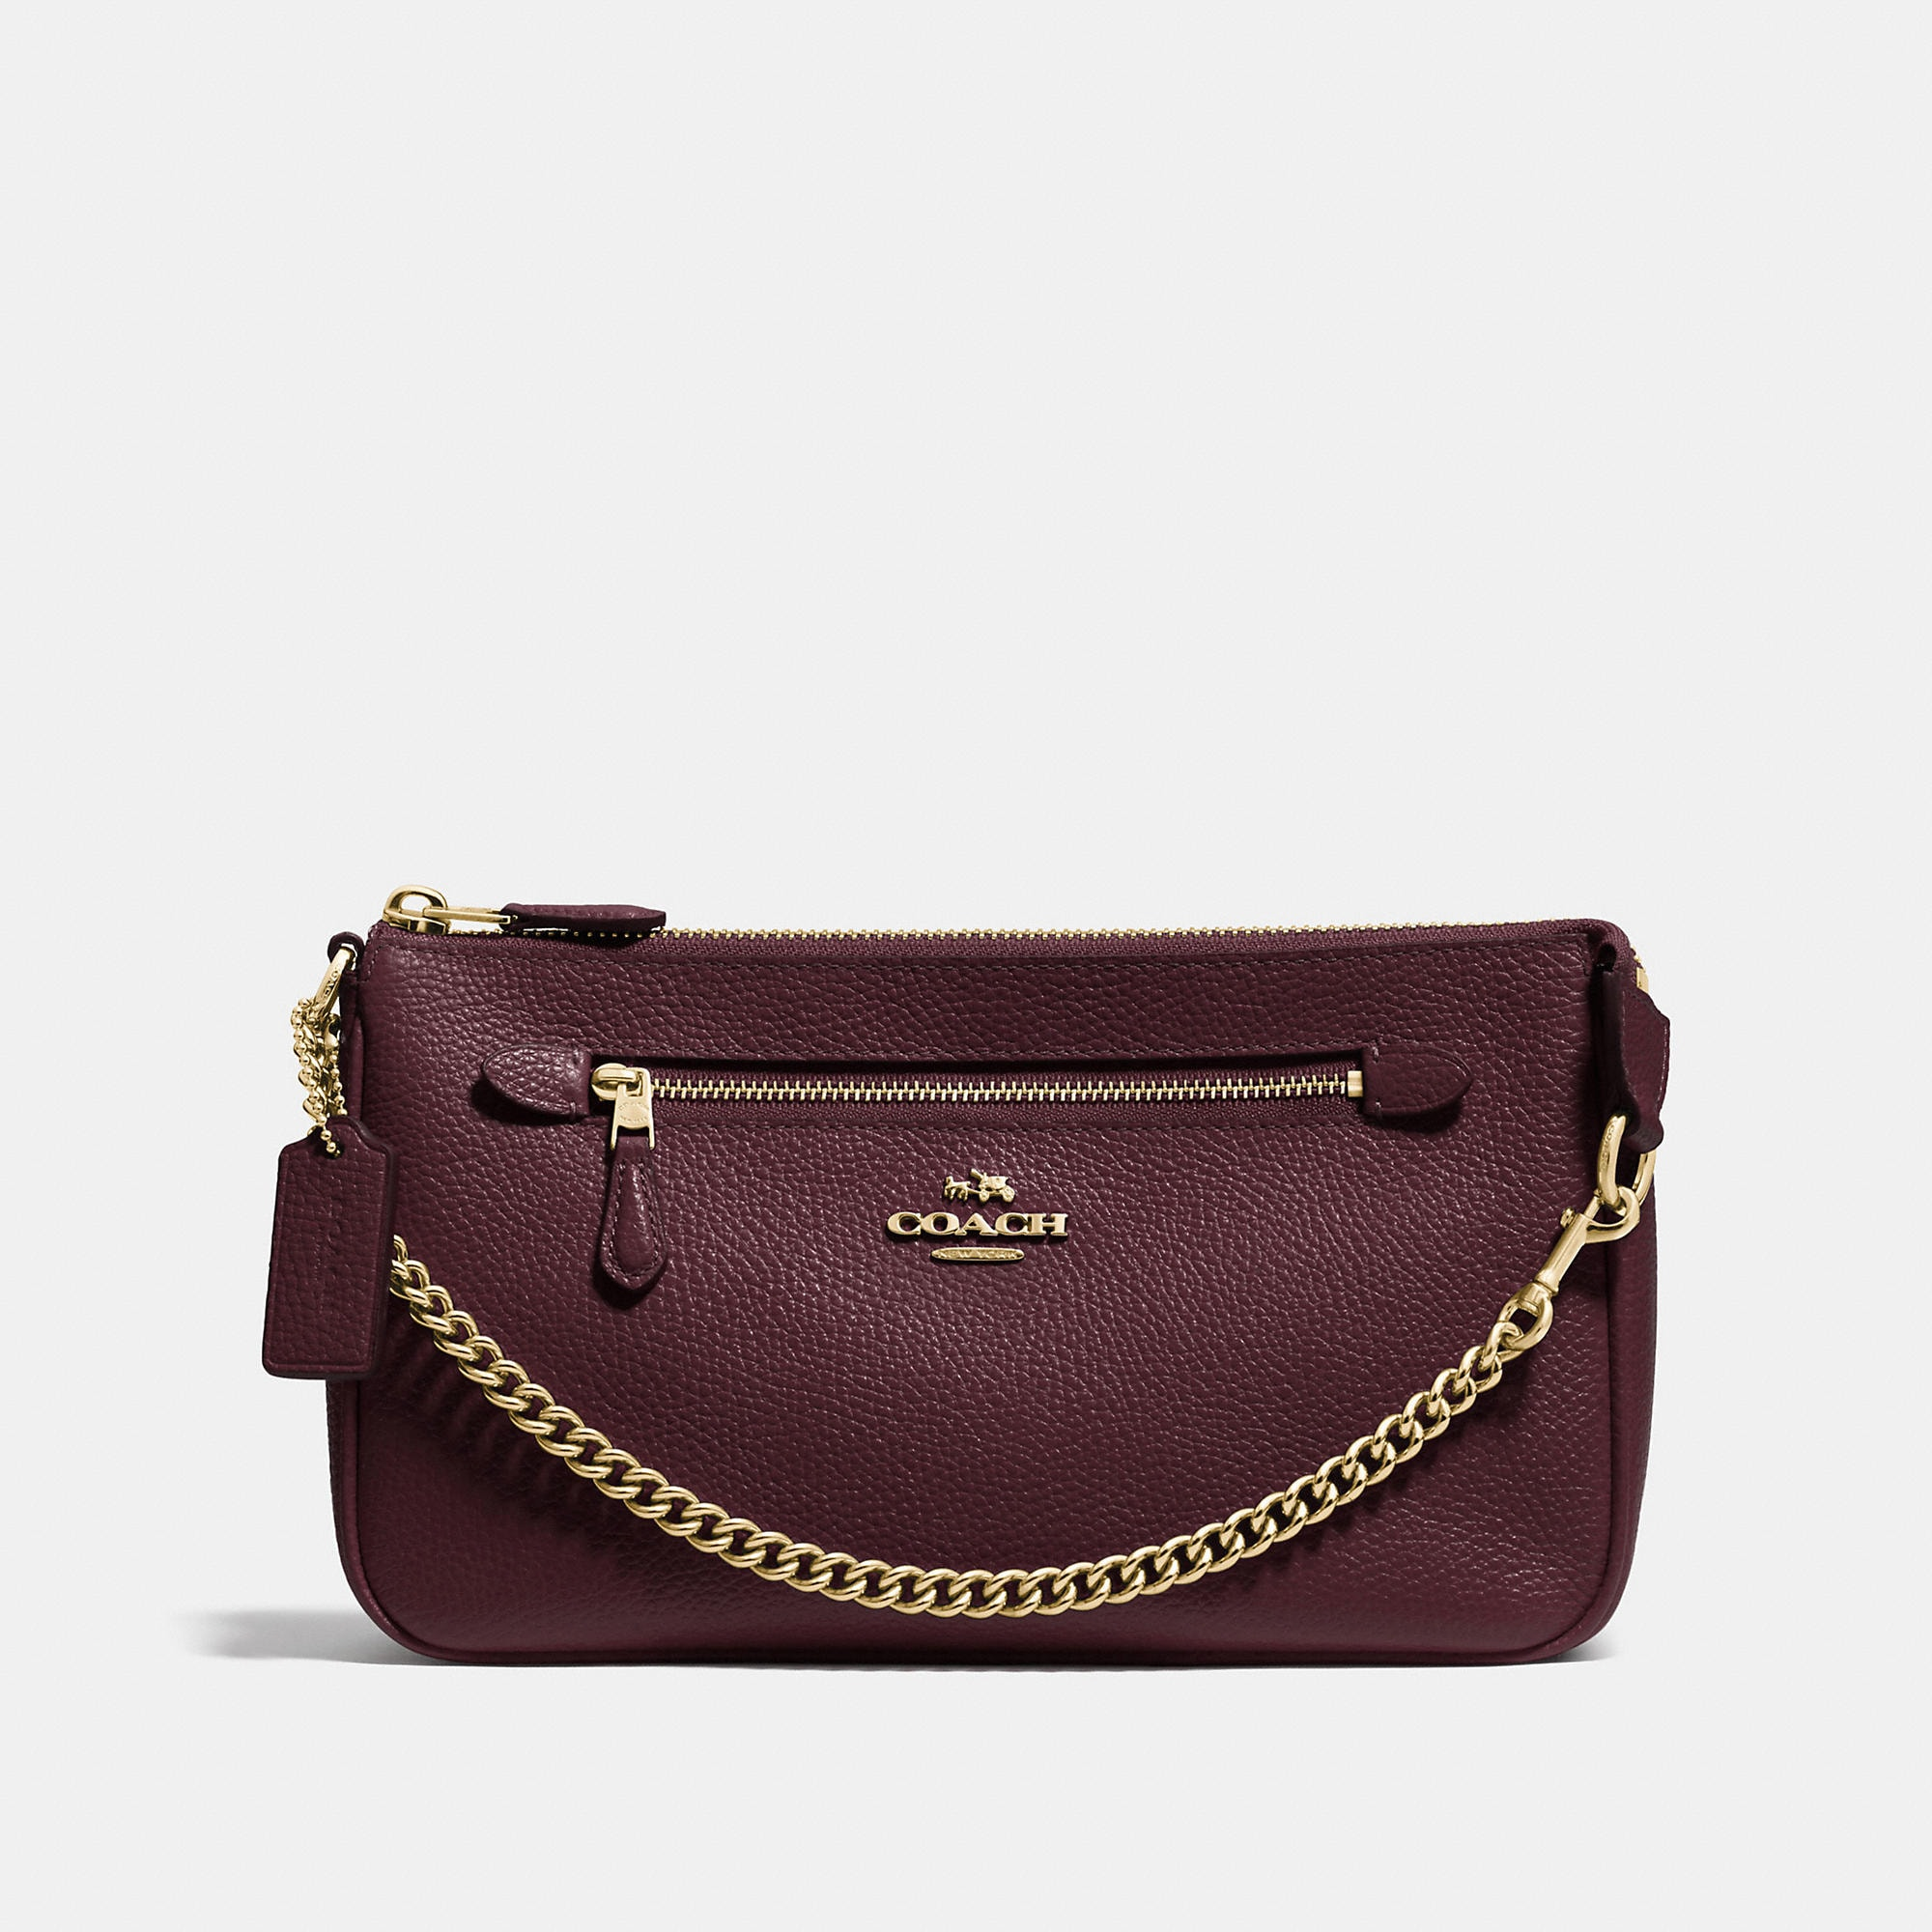 Coach Nolita Wristlet 24 In Pebble Leather